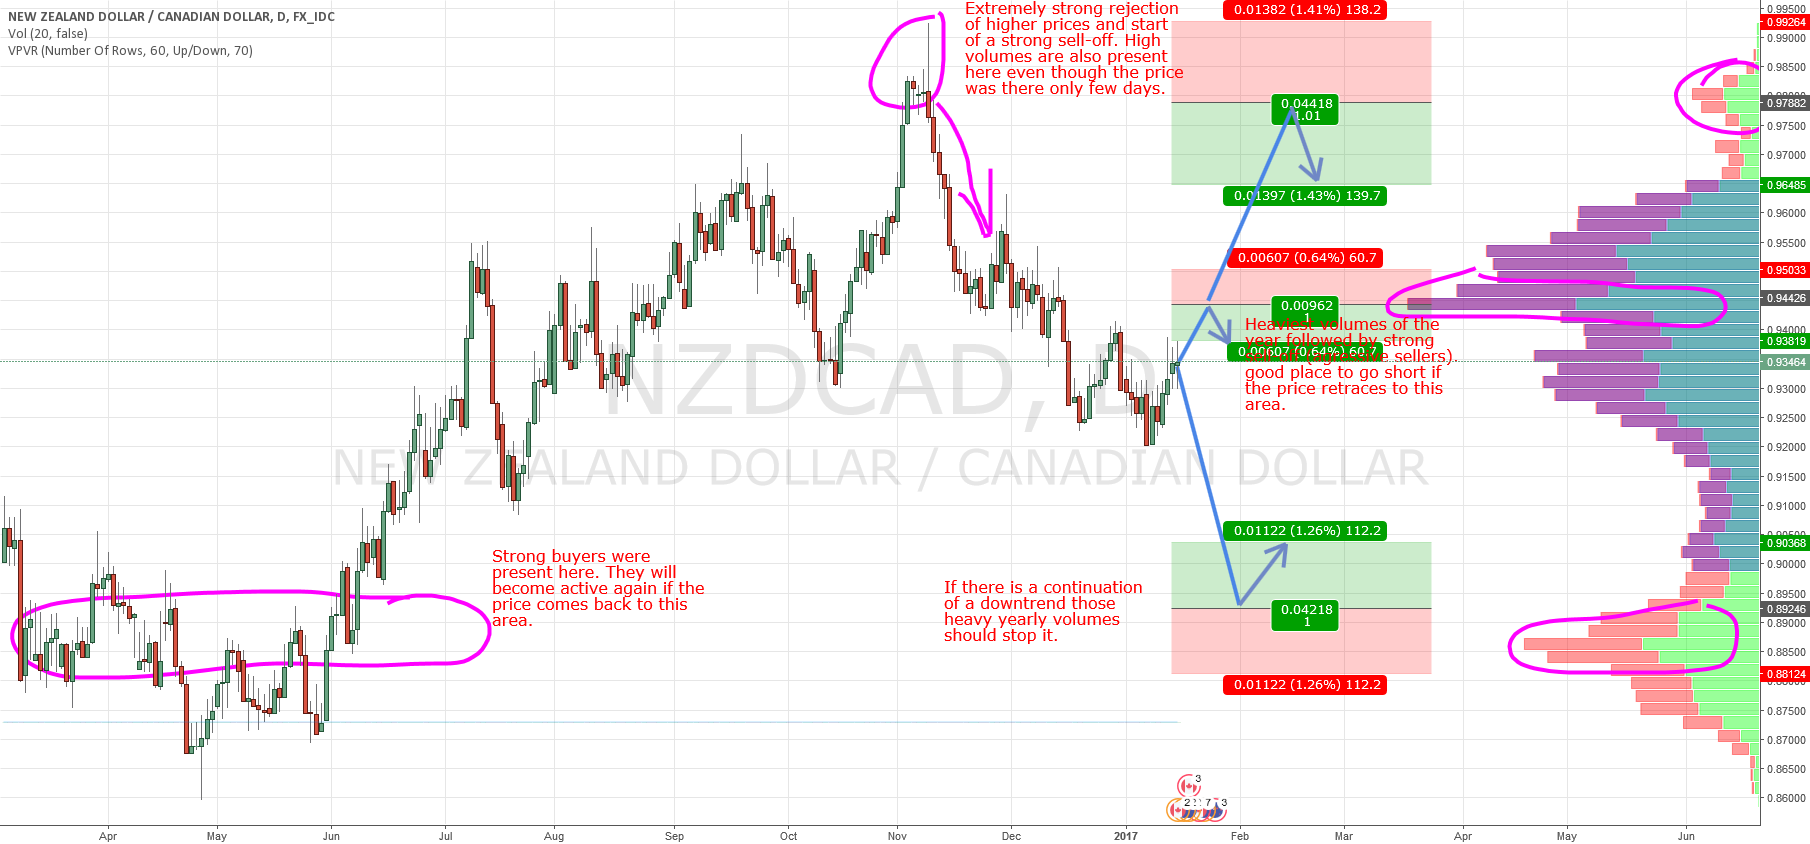 NZD/CAD swings based on Market Profile and Price Action